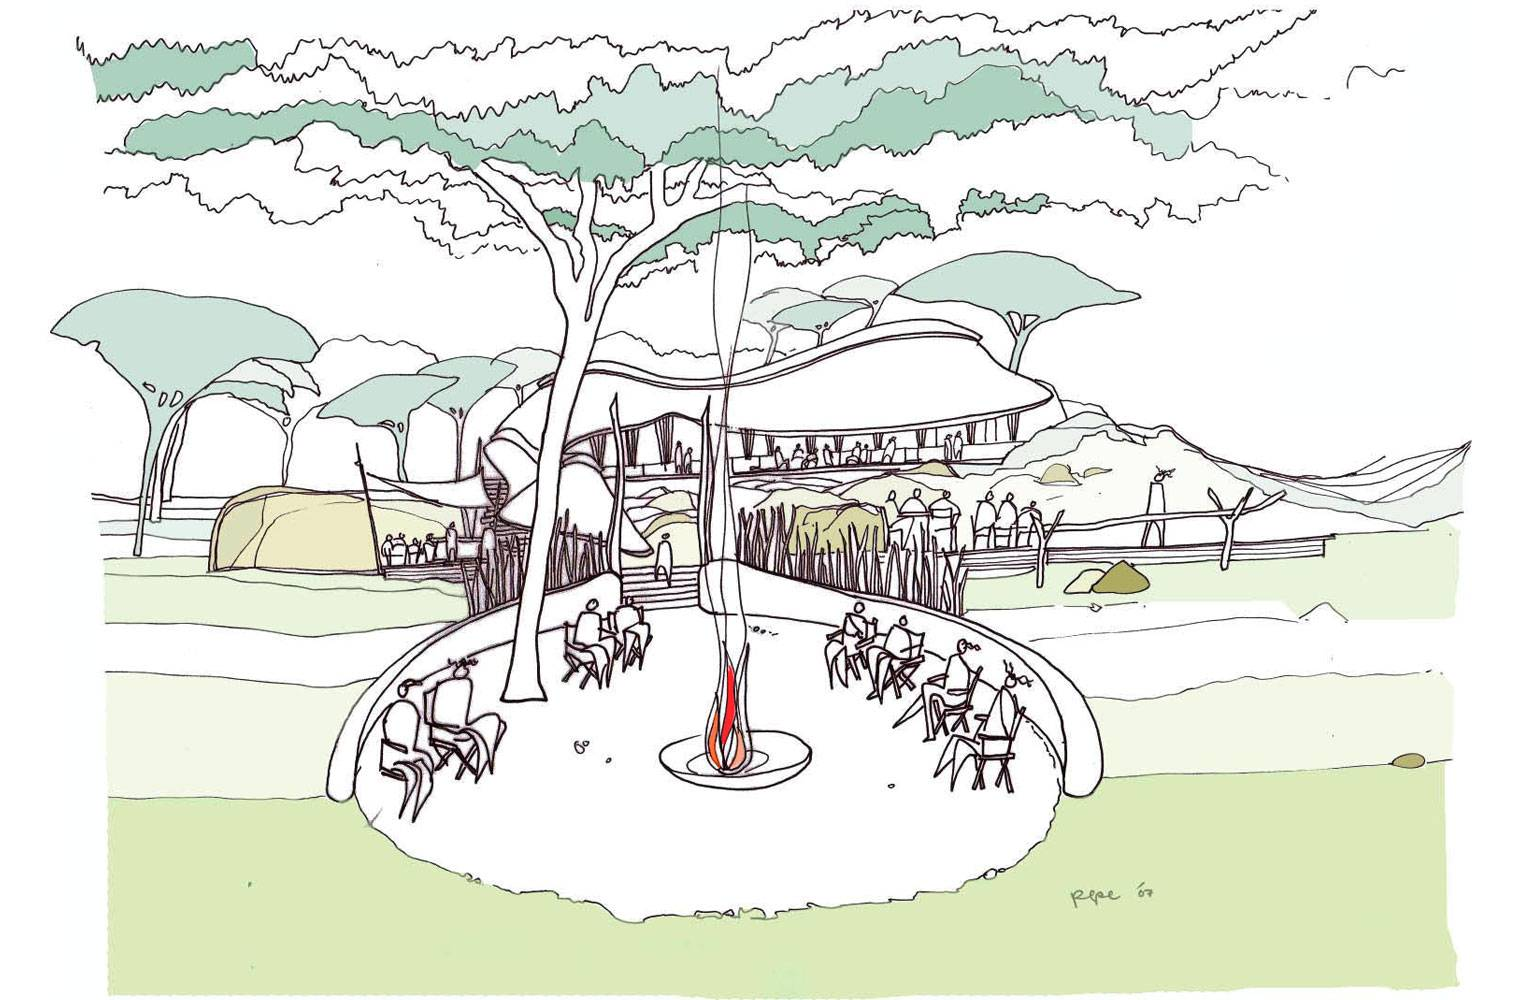 Serengeti Tented Camp - Concept Sketch of Boma Area